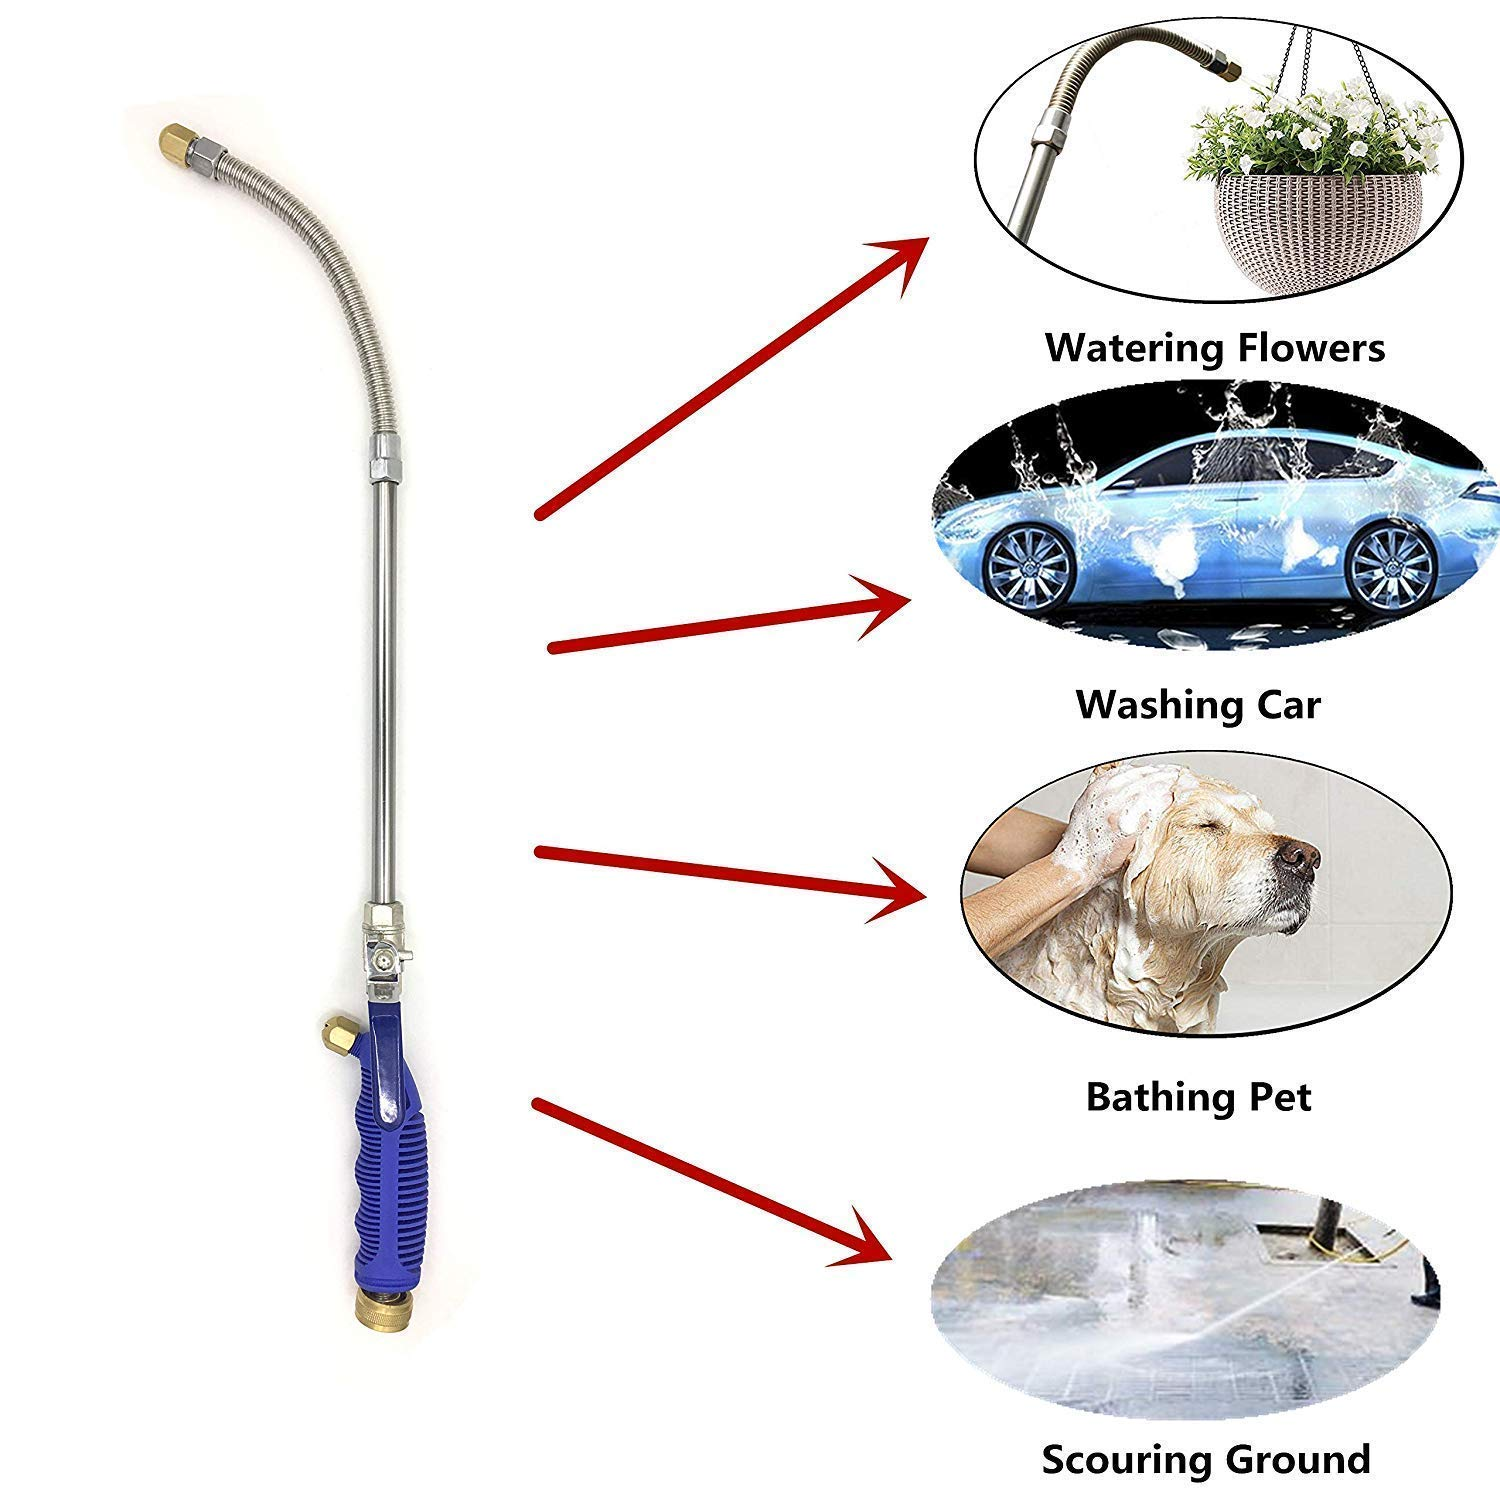 Buyplus High Pressure Hydro Jet Wand - 39'' Long Extendable Garden Sprayer Power Washer Attachment Water Hose Nozzle Car Washer, Flexible Glass Cleaning Tool Window Water Cleaner by Buyplus (Image #4)